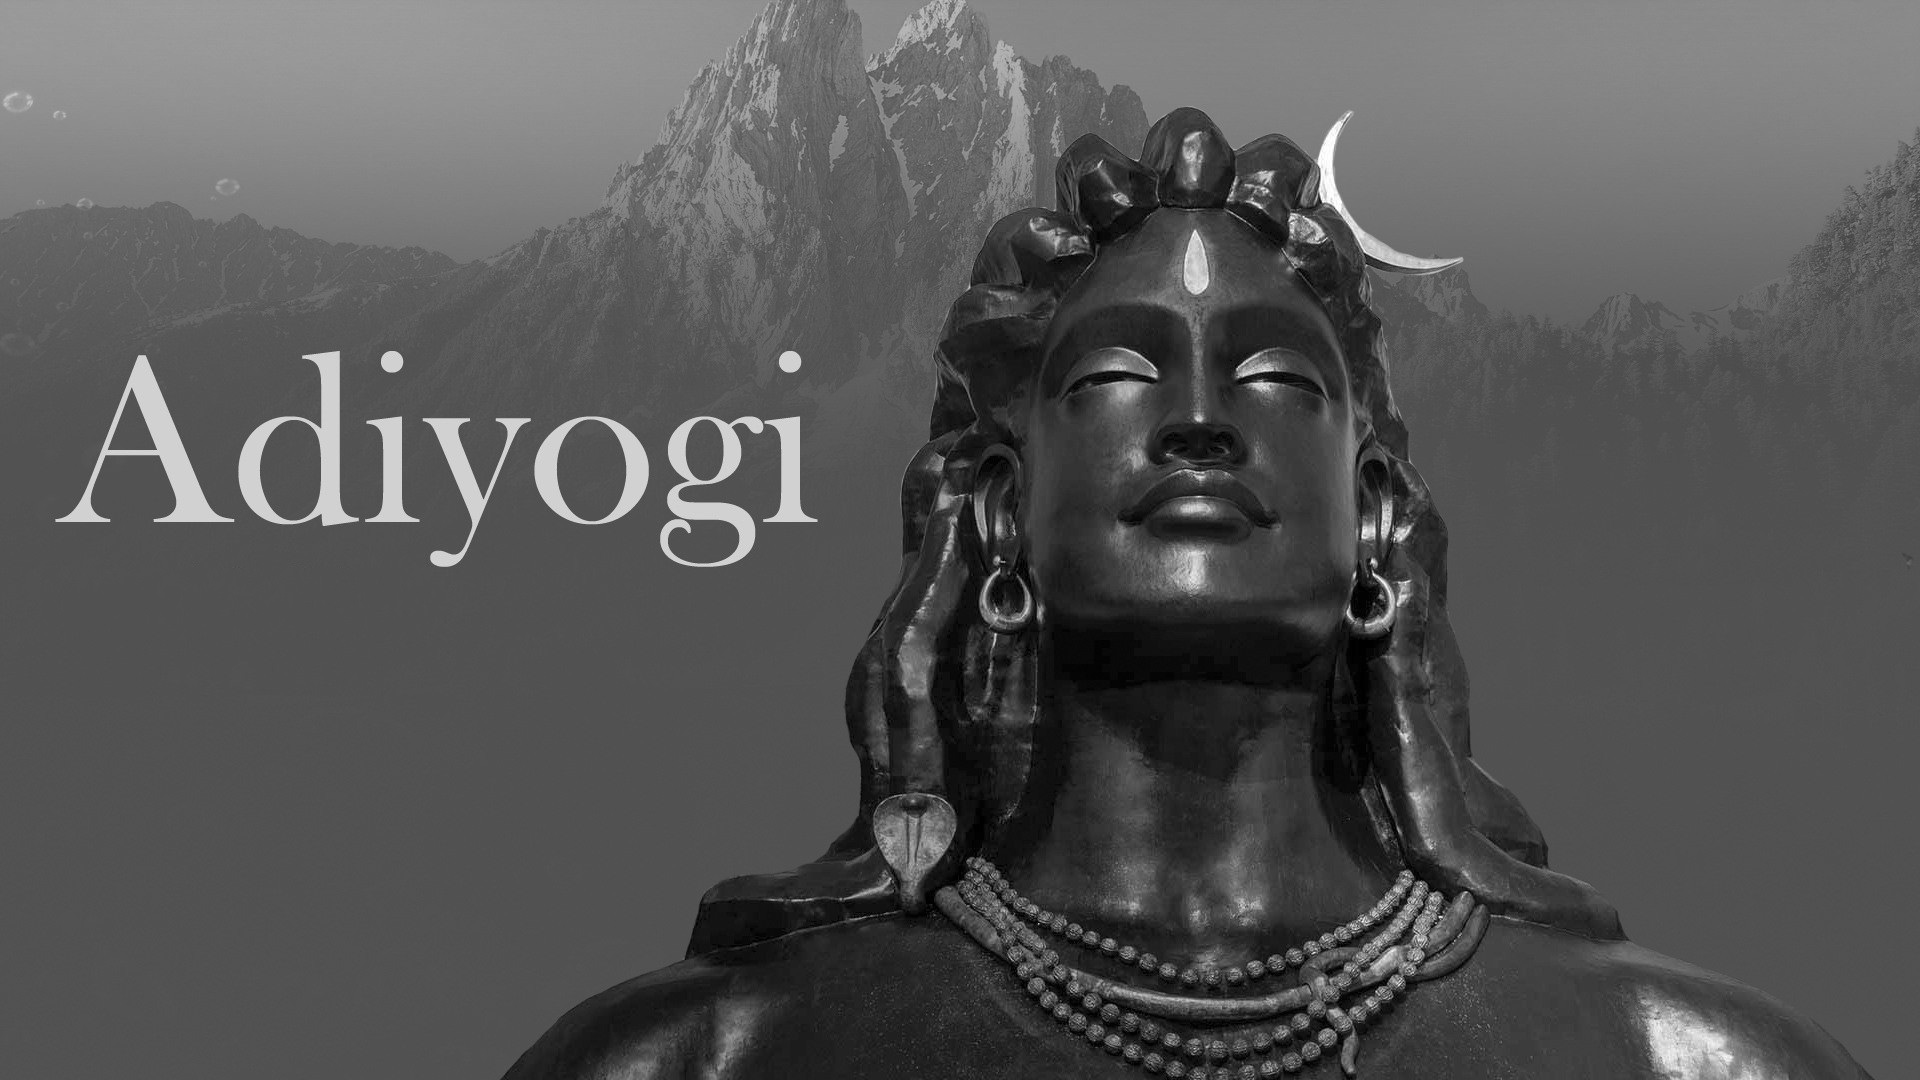 Adiyogi Shiva Wallpaper